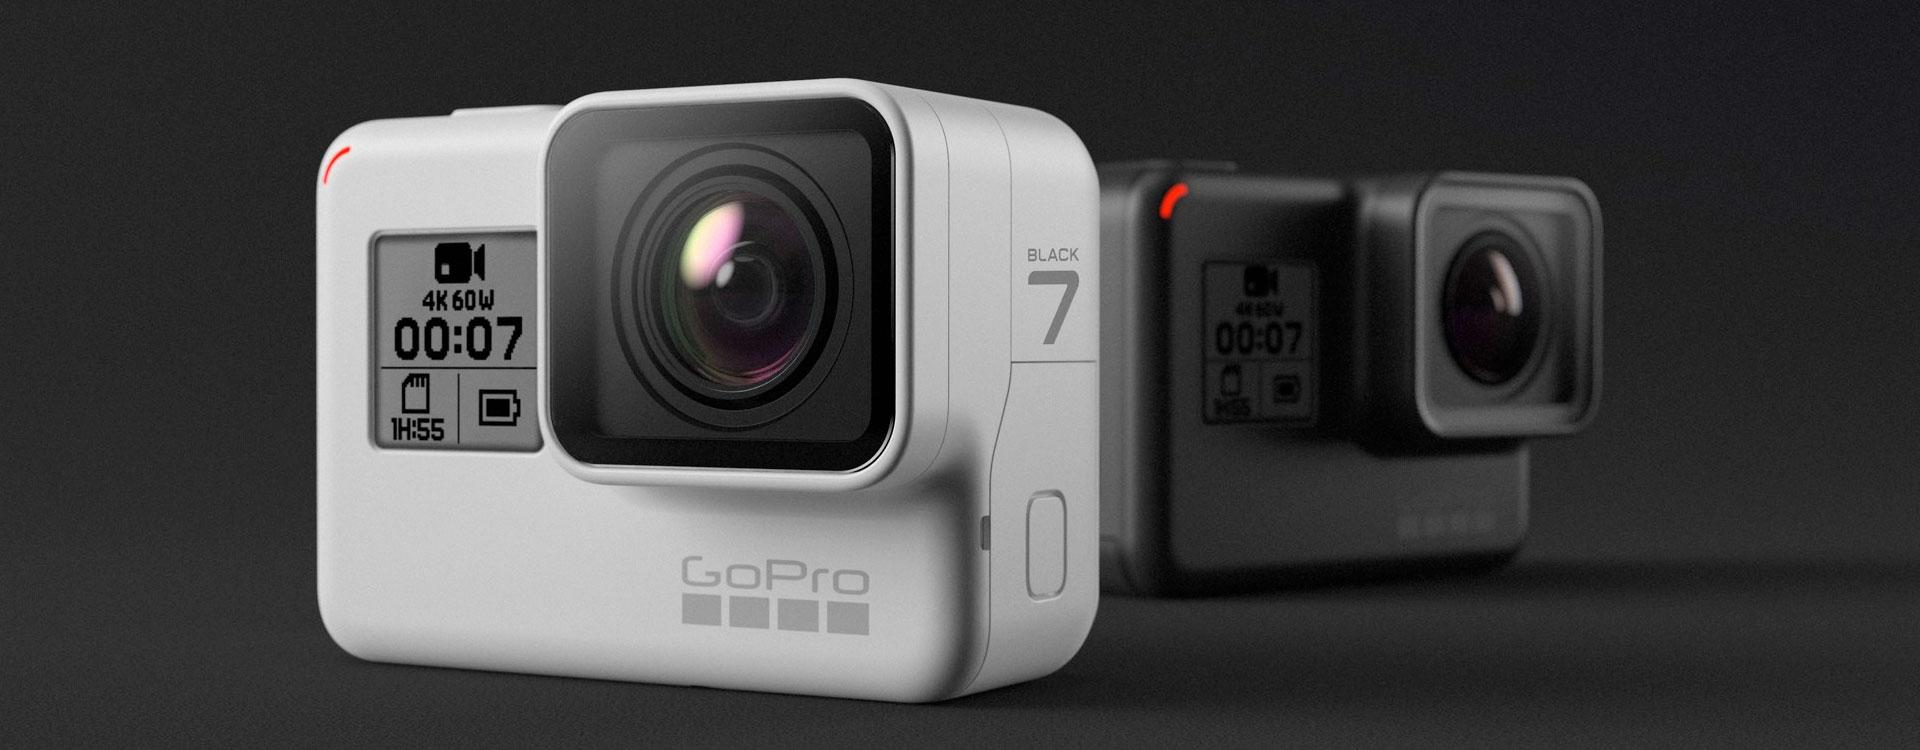 Diferencias GoPRO Hero7 Black, Silver y White comparativa